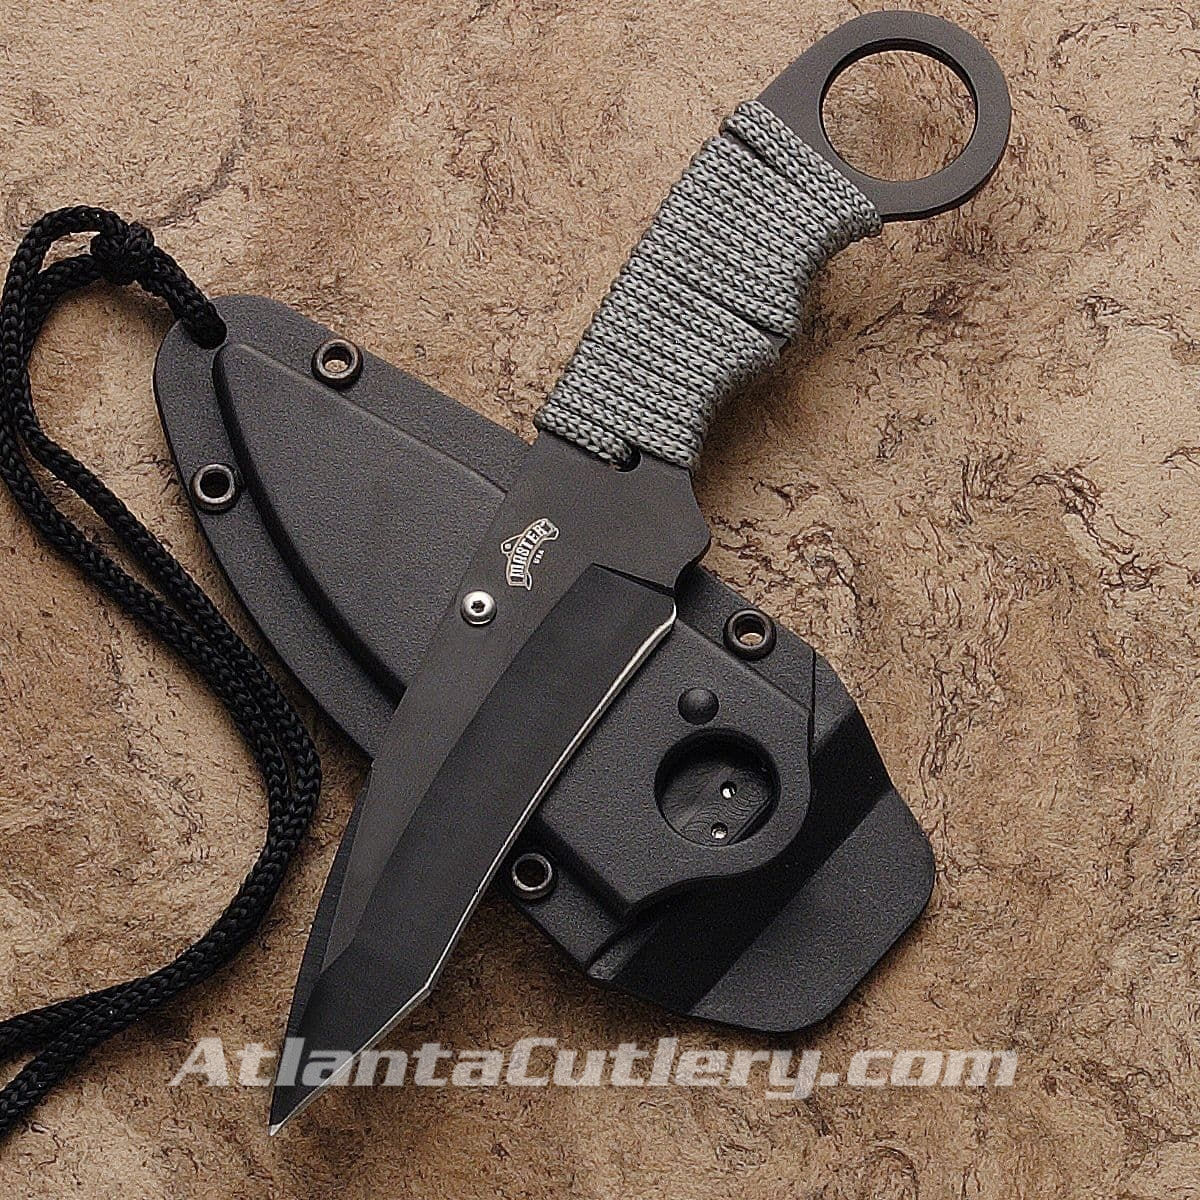 Cougar Neck Knife with Lanyard and Paracord Grip